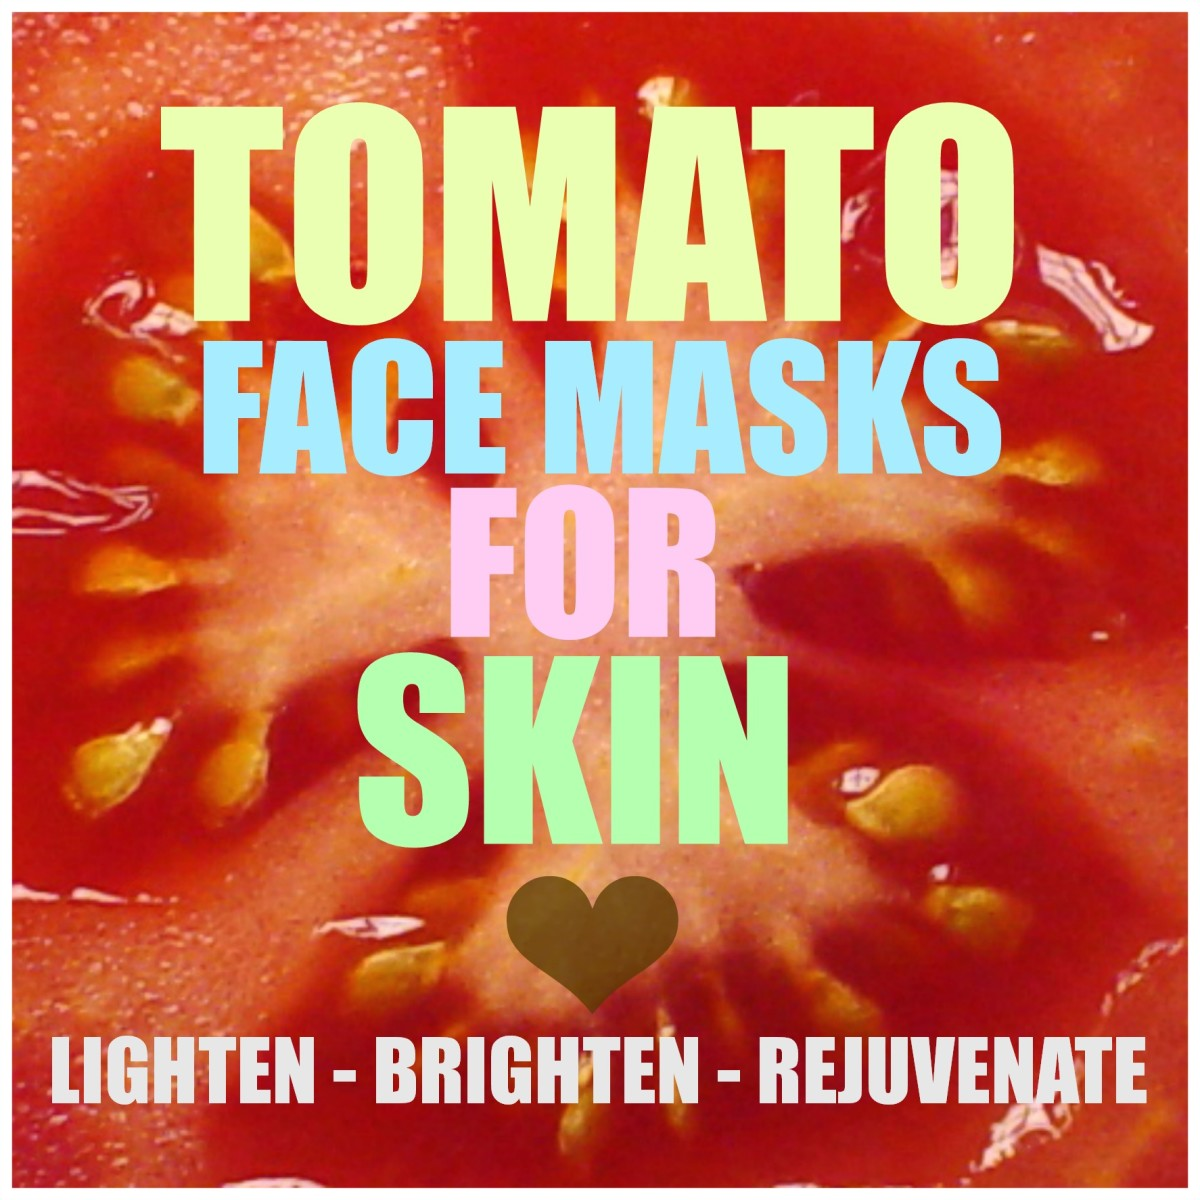 Looking for the best natural skin lightening ingredient without spending a dollar? It's got to be tomato face masks that leave your skin feeling rosy, radiant and brighter than ever before!